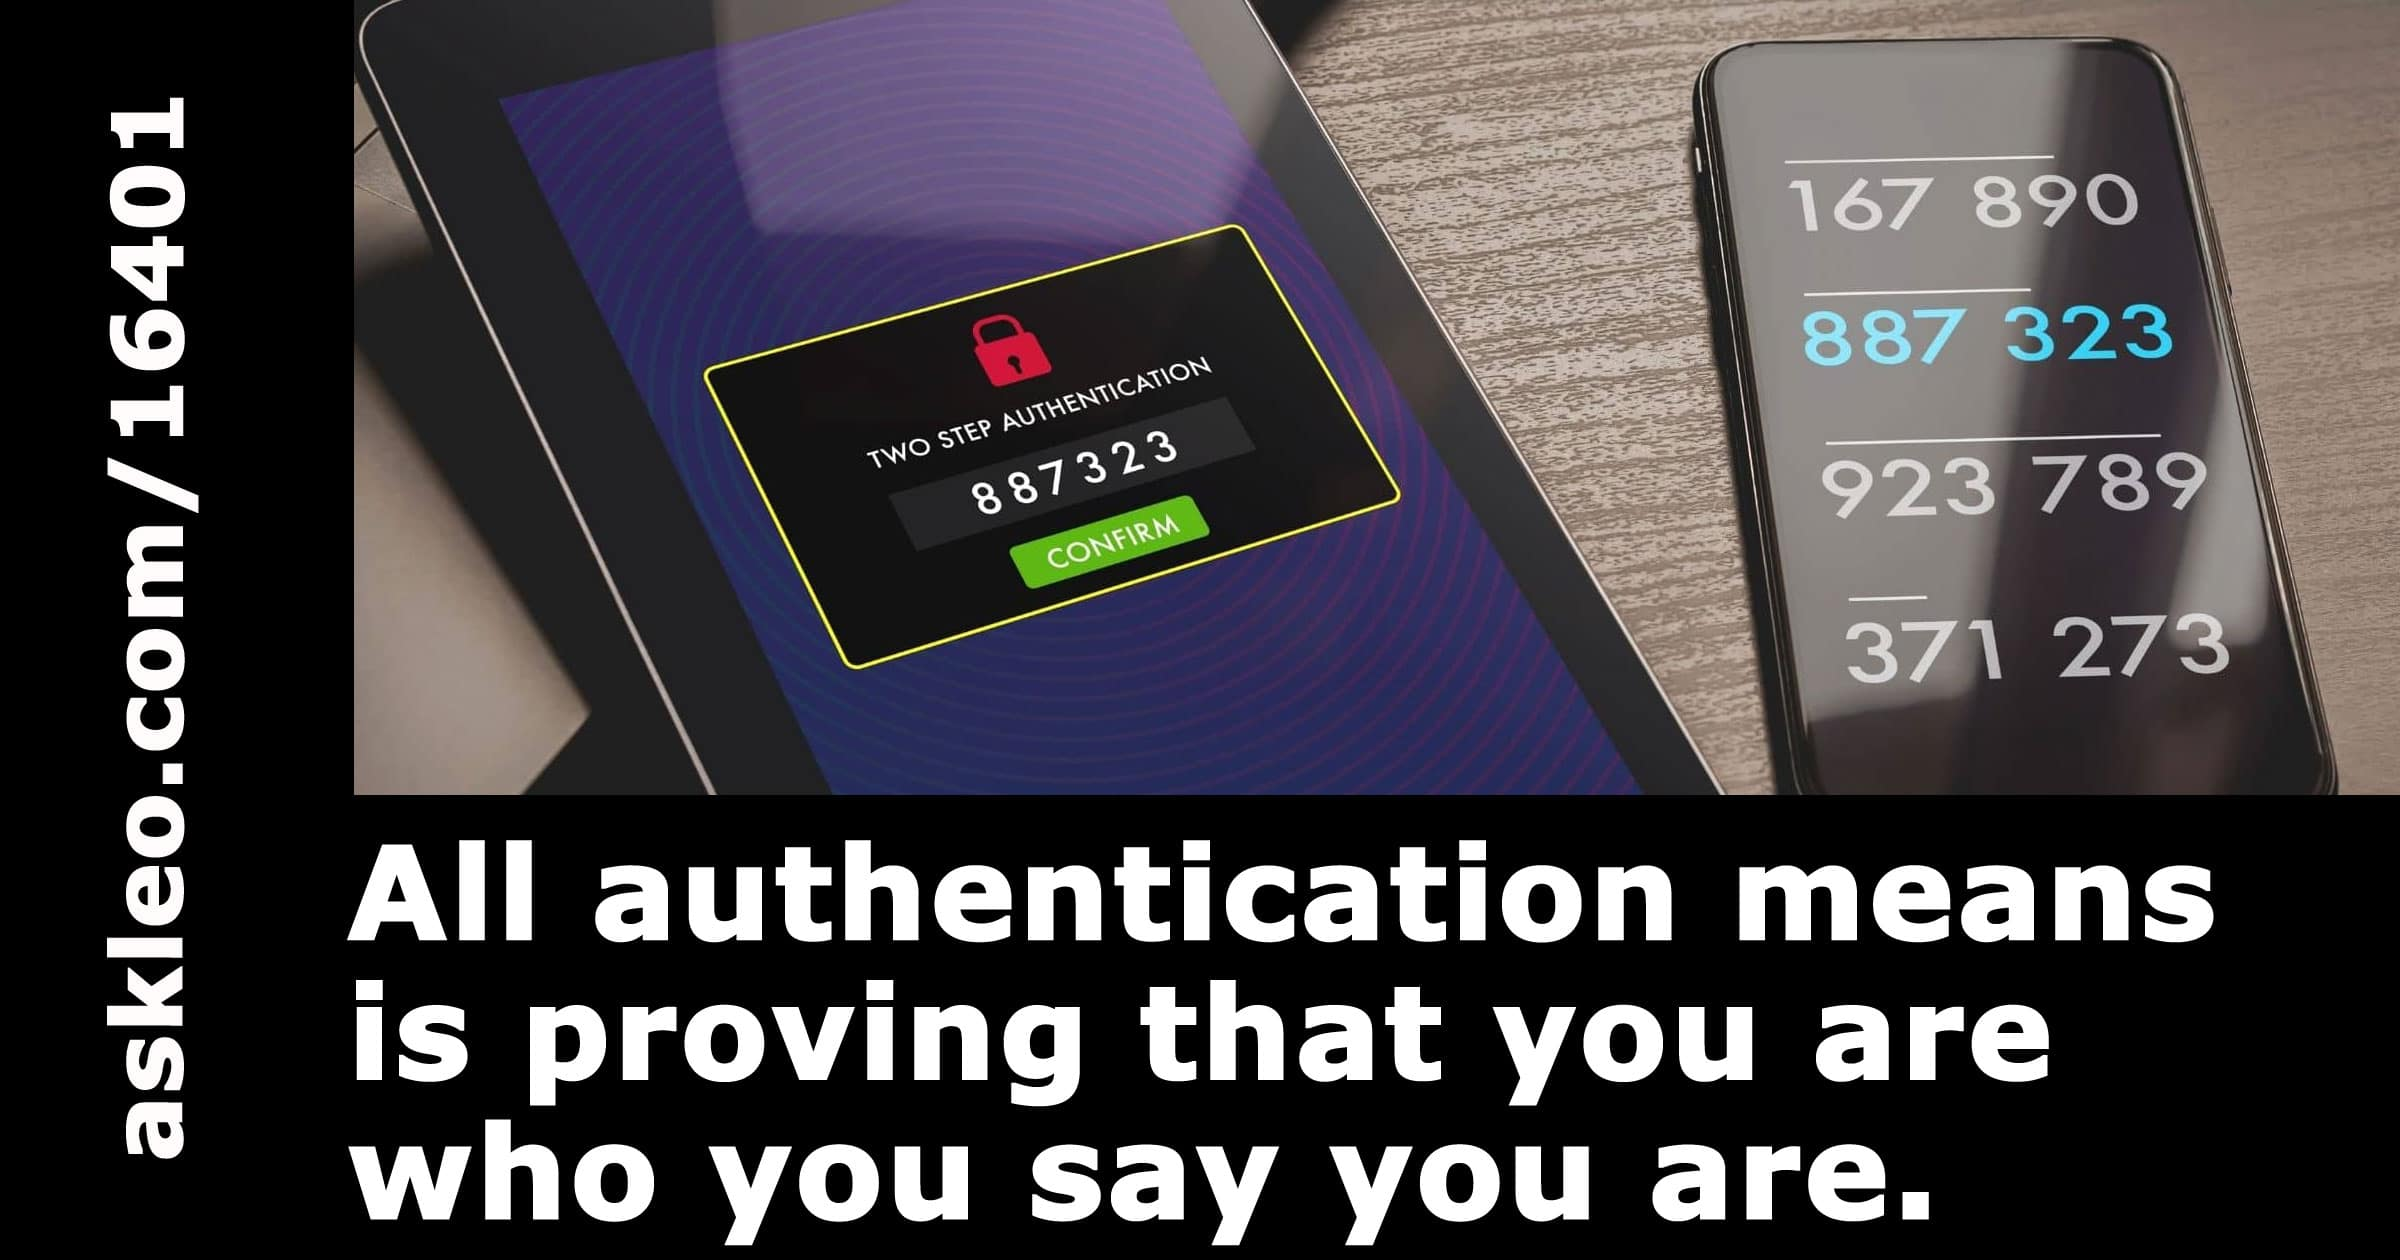 How Two-Factor Authentication Works, and Why You Should Use It to Keep the Hackers Out